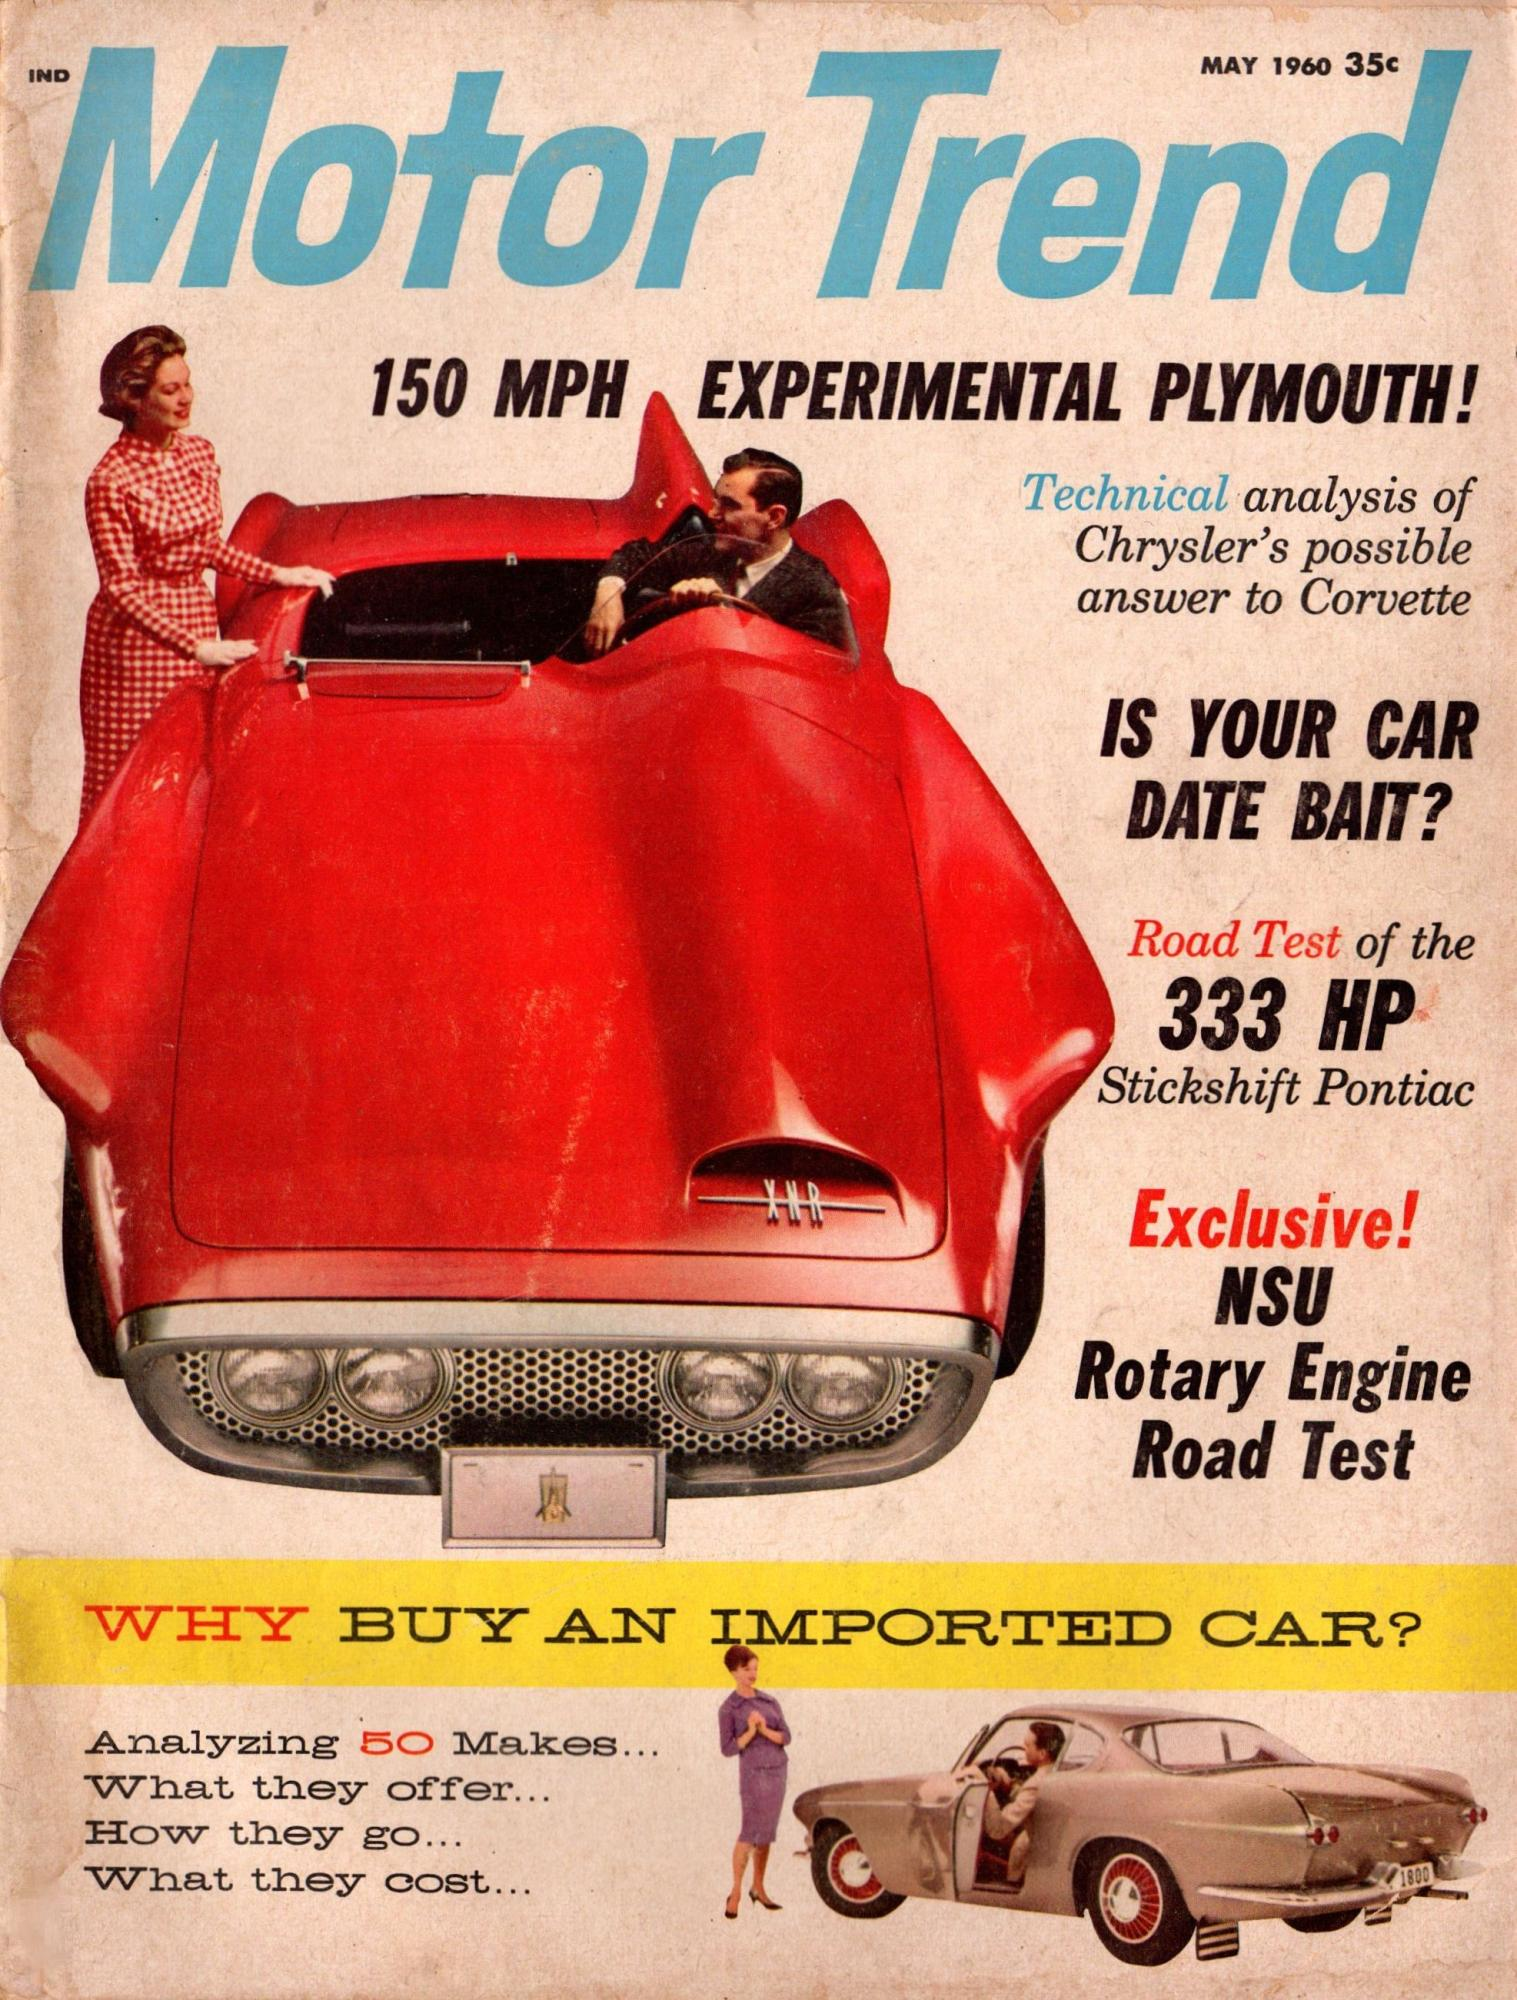 AutomotiveTimelines blog » Motor Trend May 1960